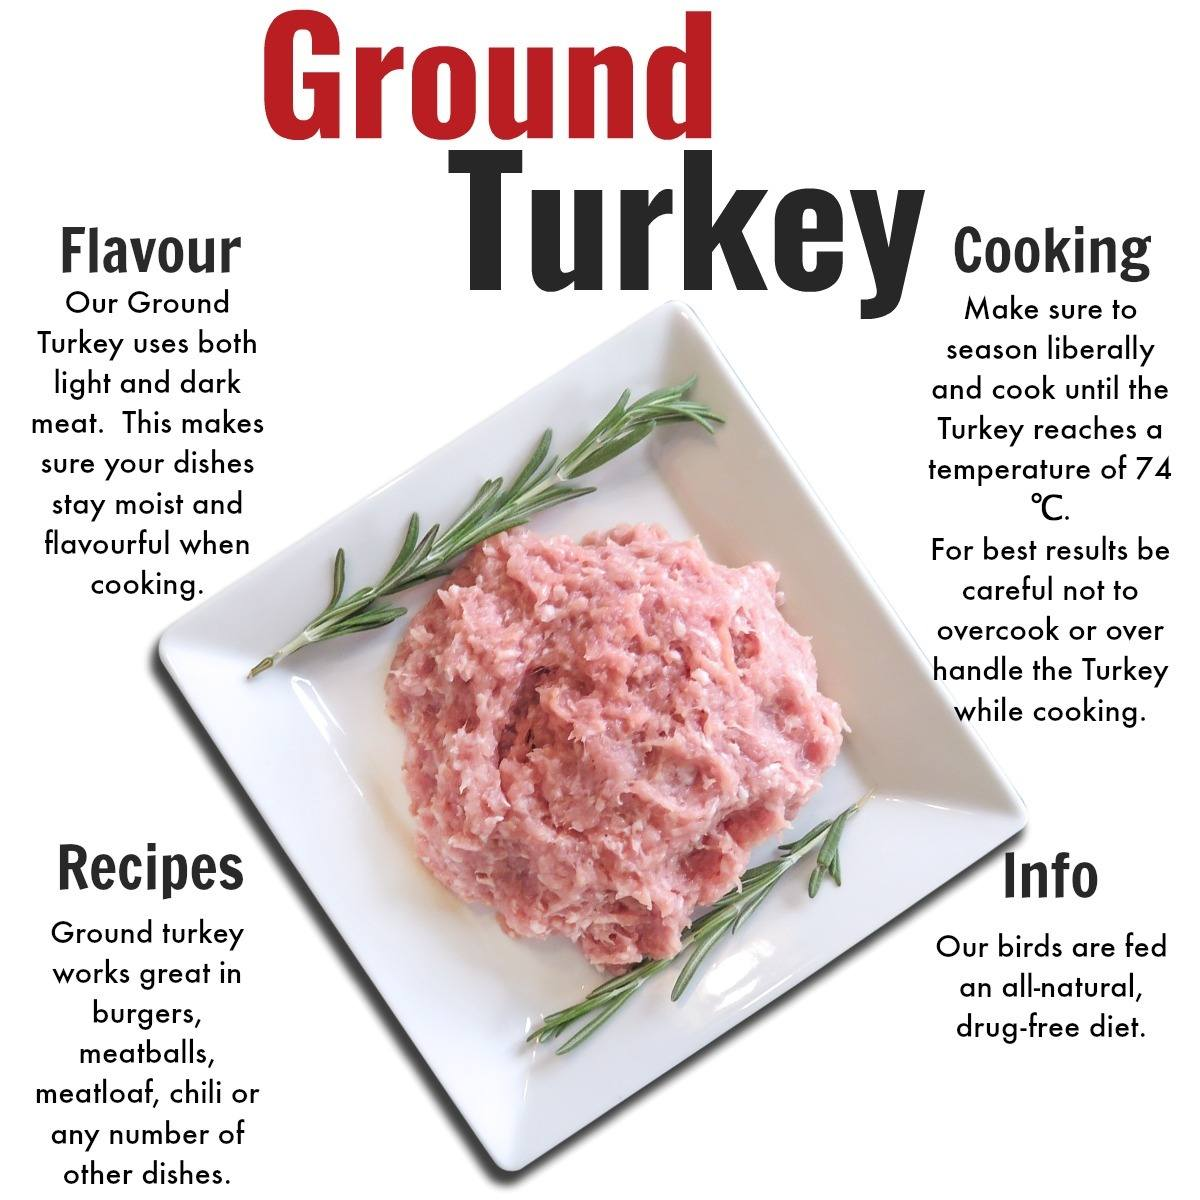 Ground Turkey Pop up -Drug Free Ontario Turkey - Nutrafarms